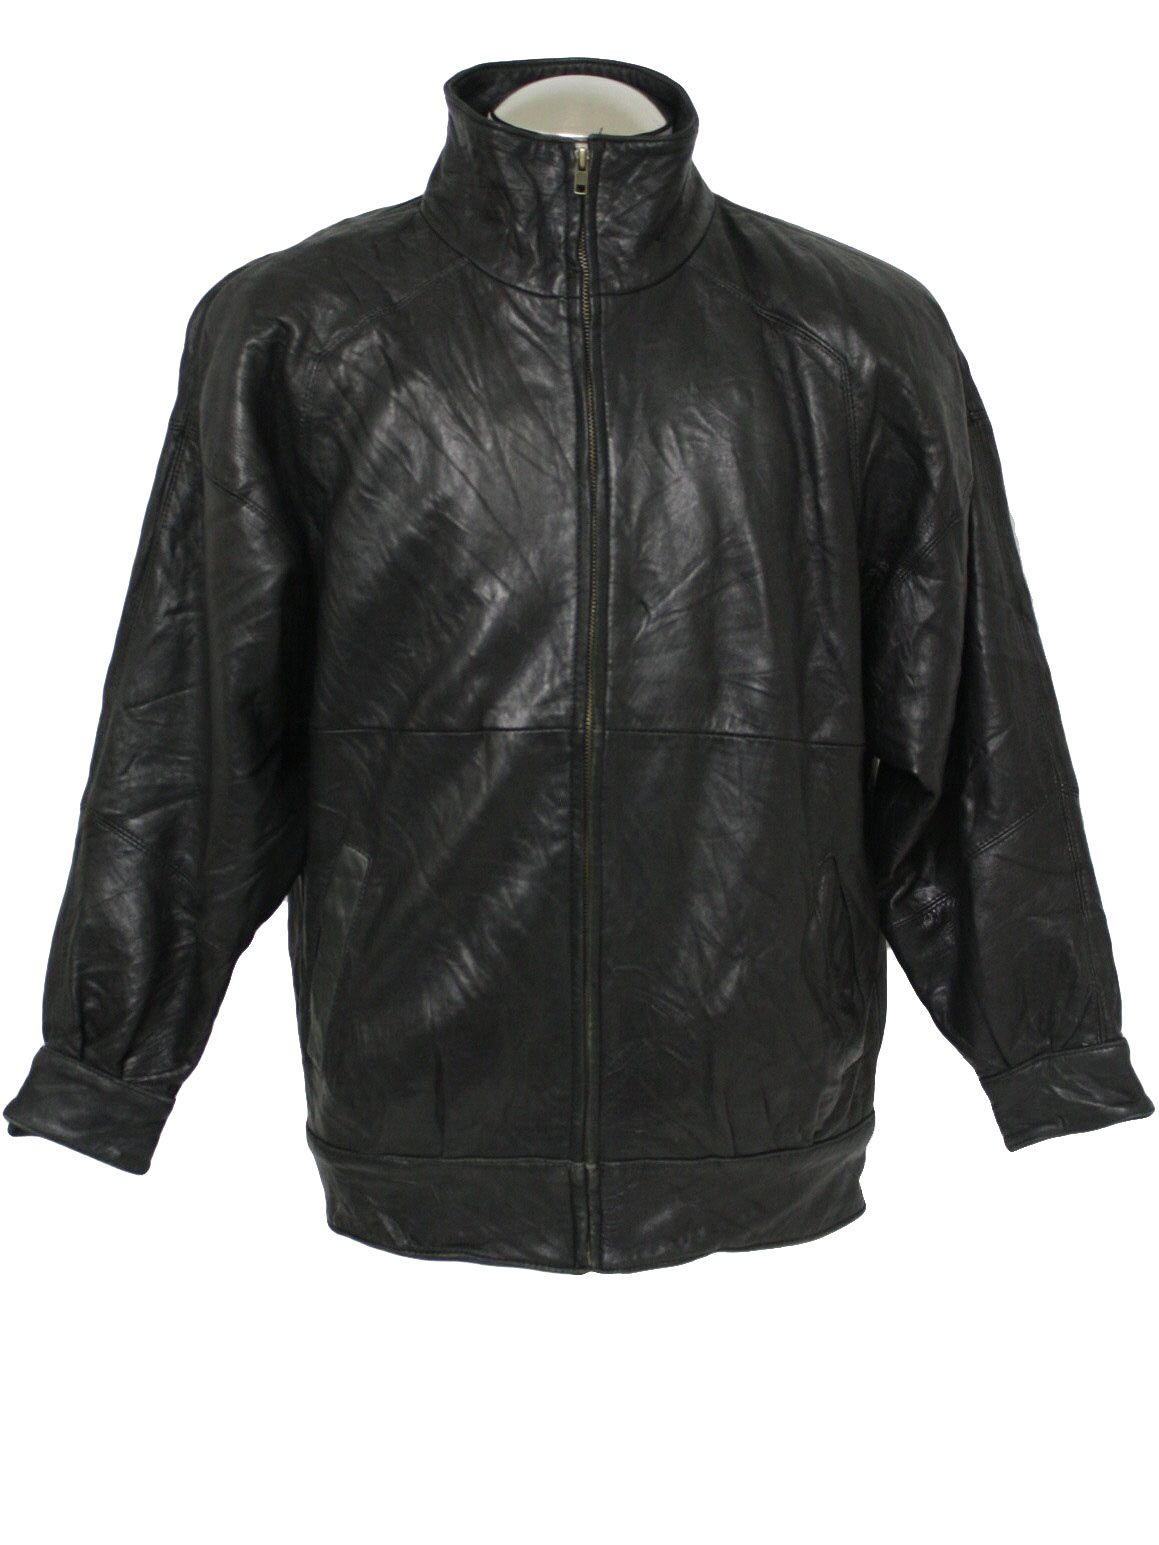 Eighties Nordstrom Leather Jacket: 80s -Nordstrom- Mens black soft